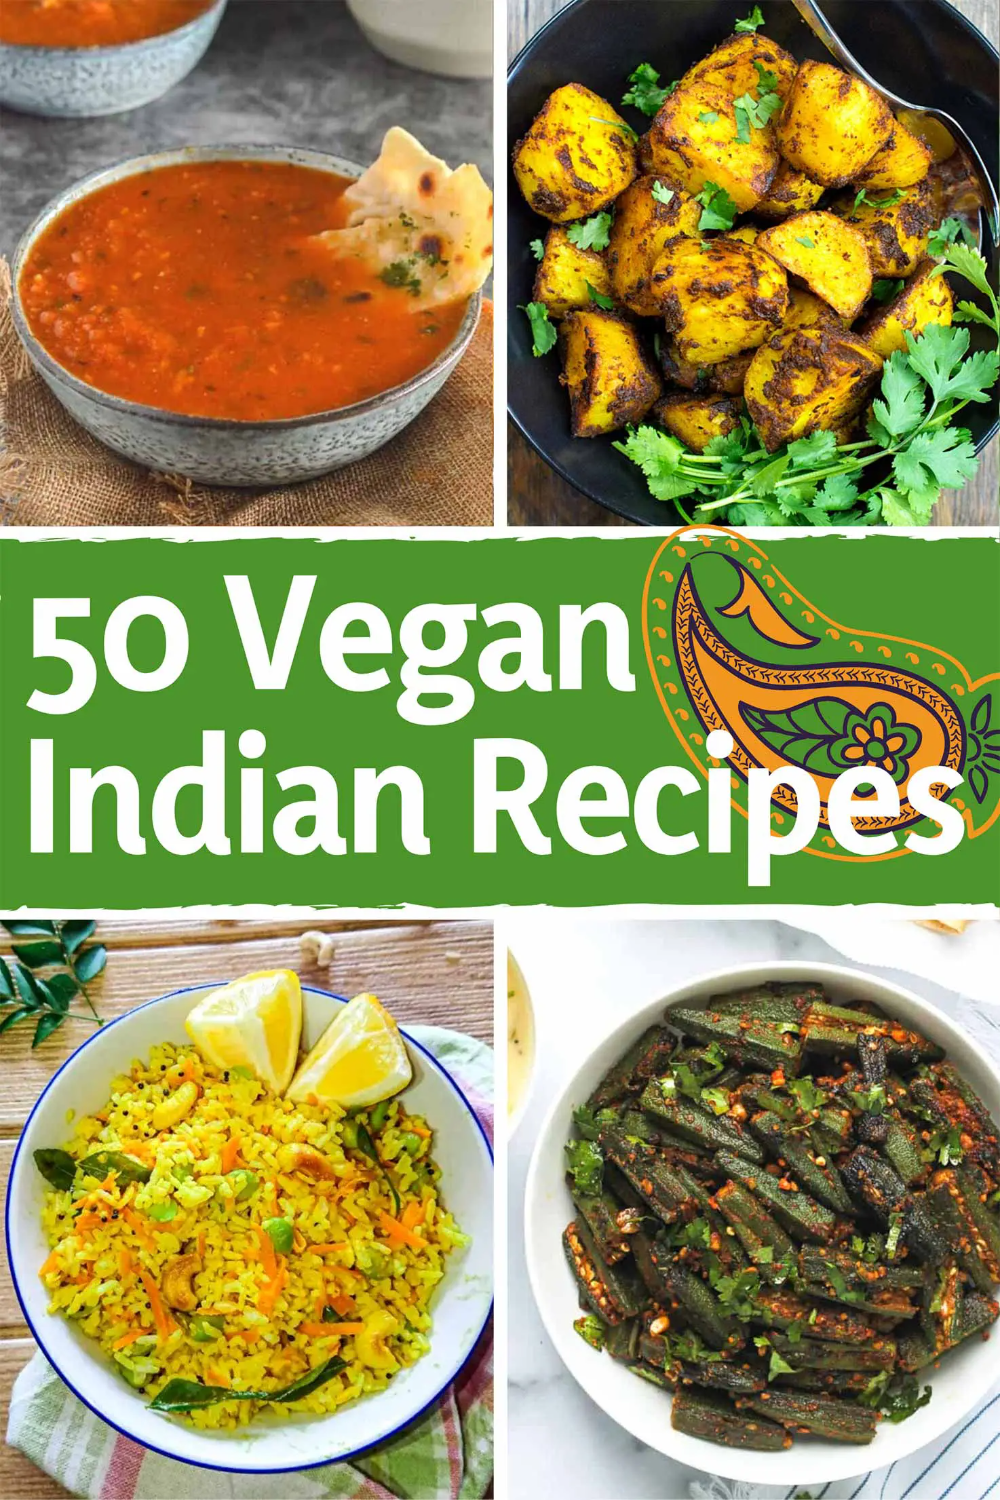 50 Vegan Indian Recipes From Comforting Meals To Showstopper Desserts Recipe Vegan Indian Recipes Indian Food Recipes Vegan Indian